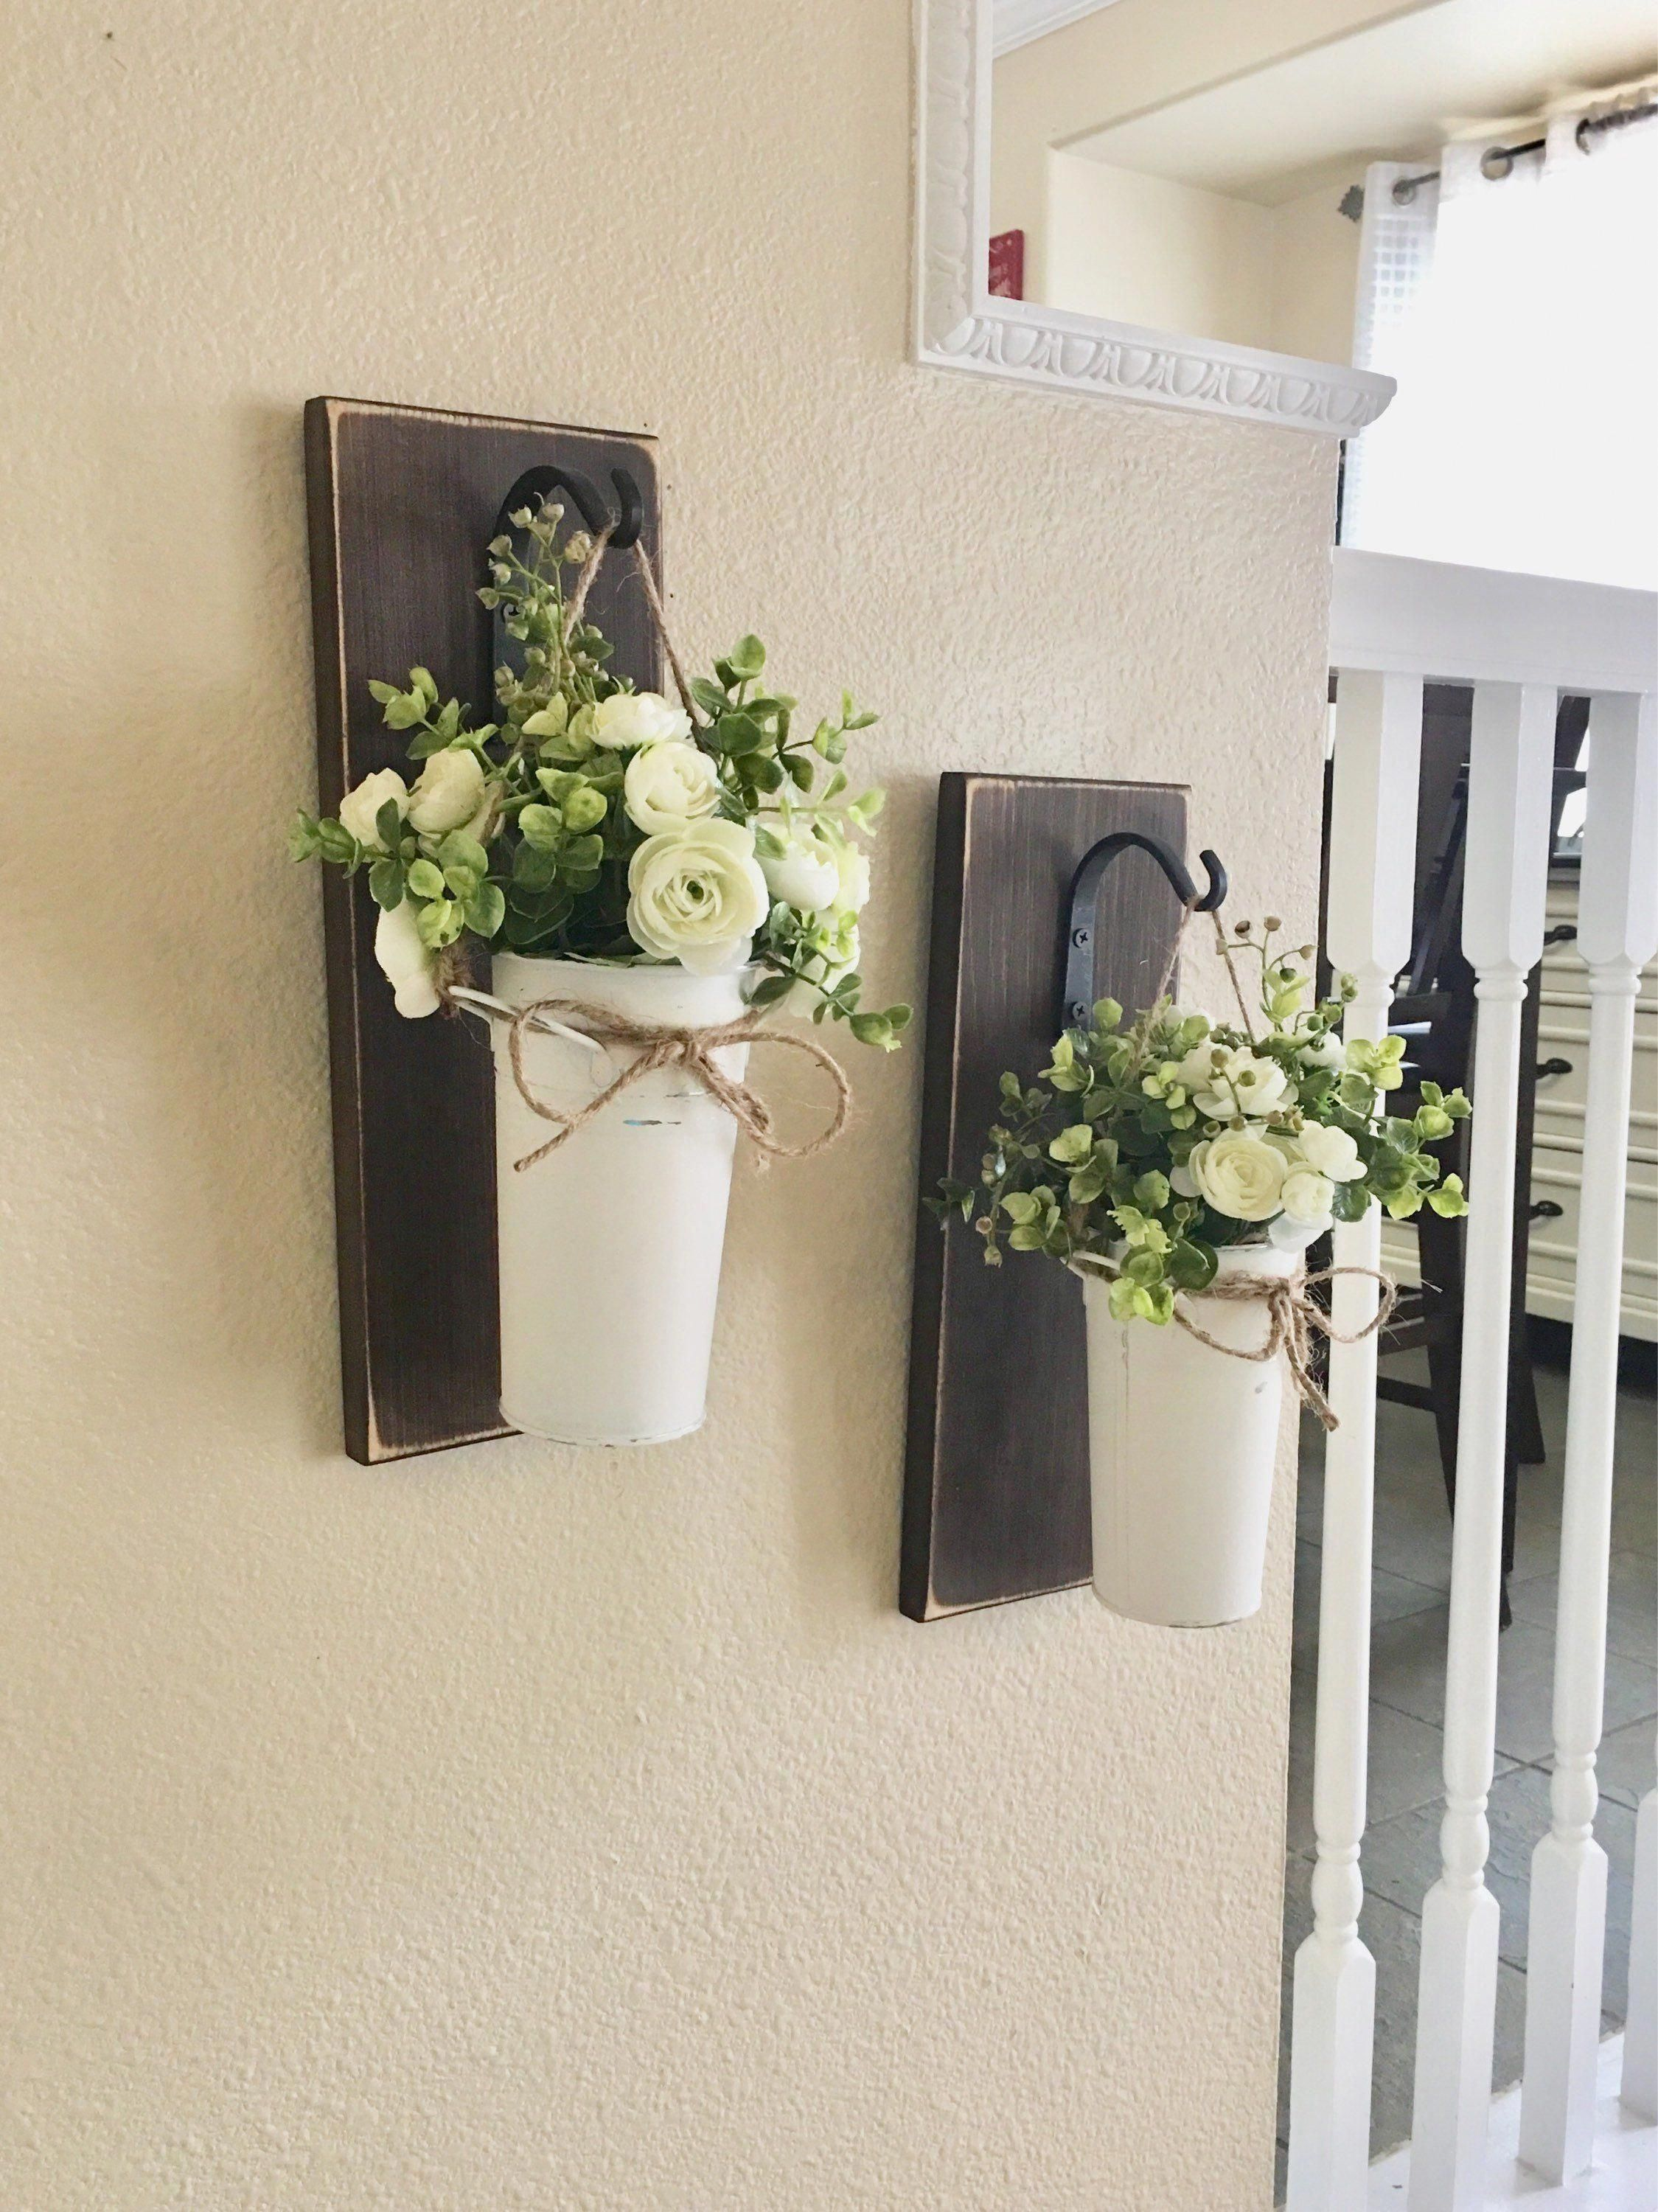 Farmhouse Living Room Decor, Hanging Planter with Greenery ... on Wall Sconces For Greenery Decoration id=31865